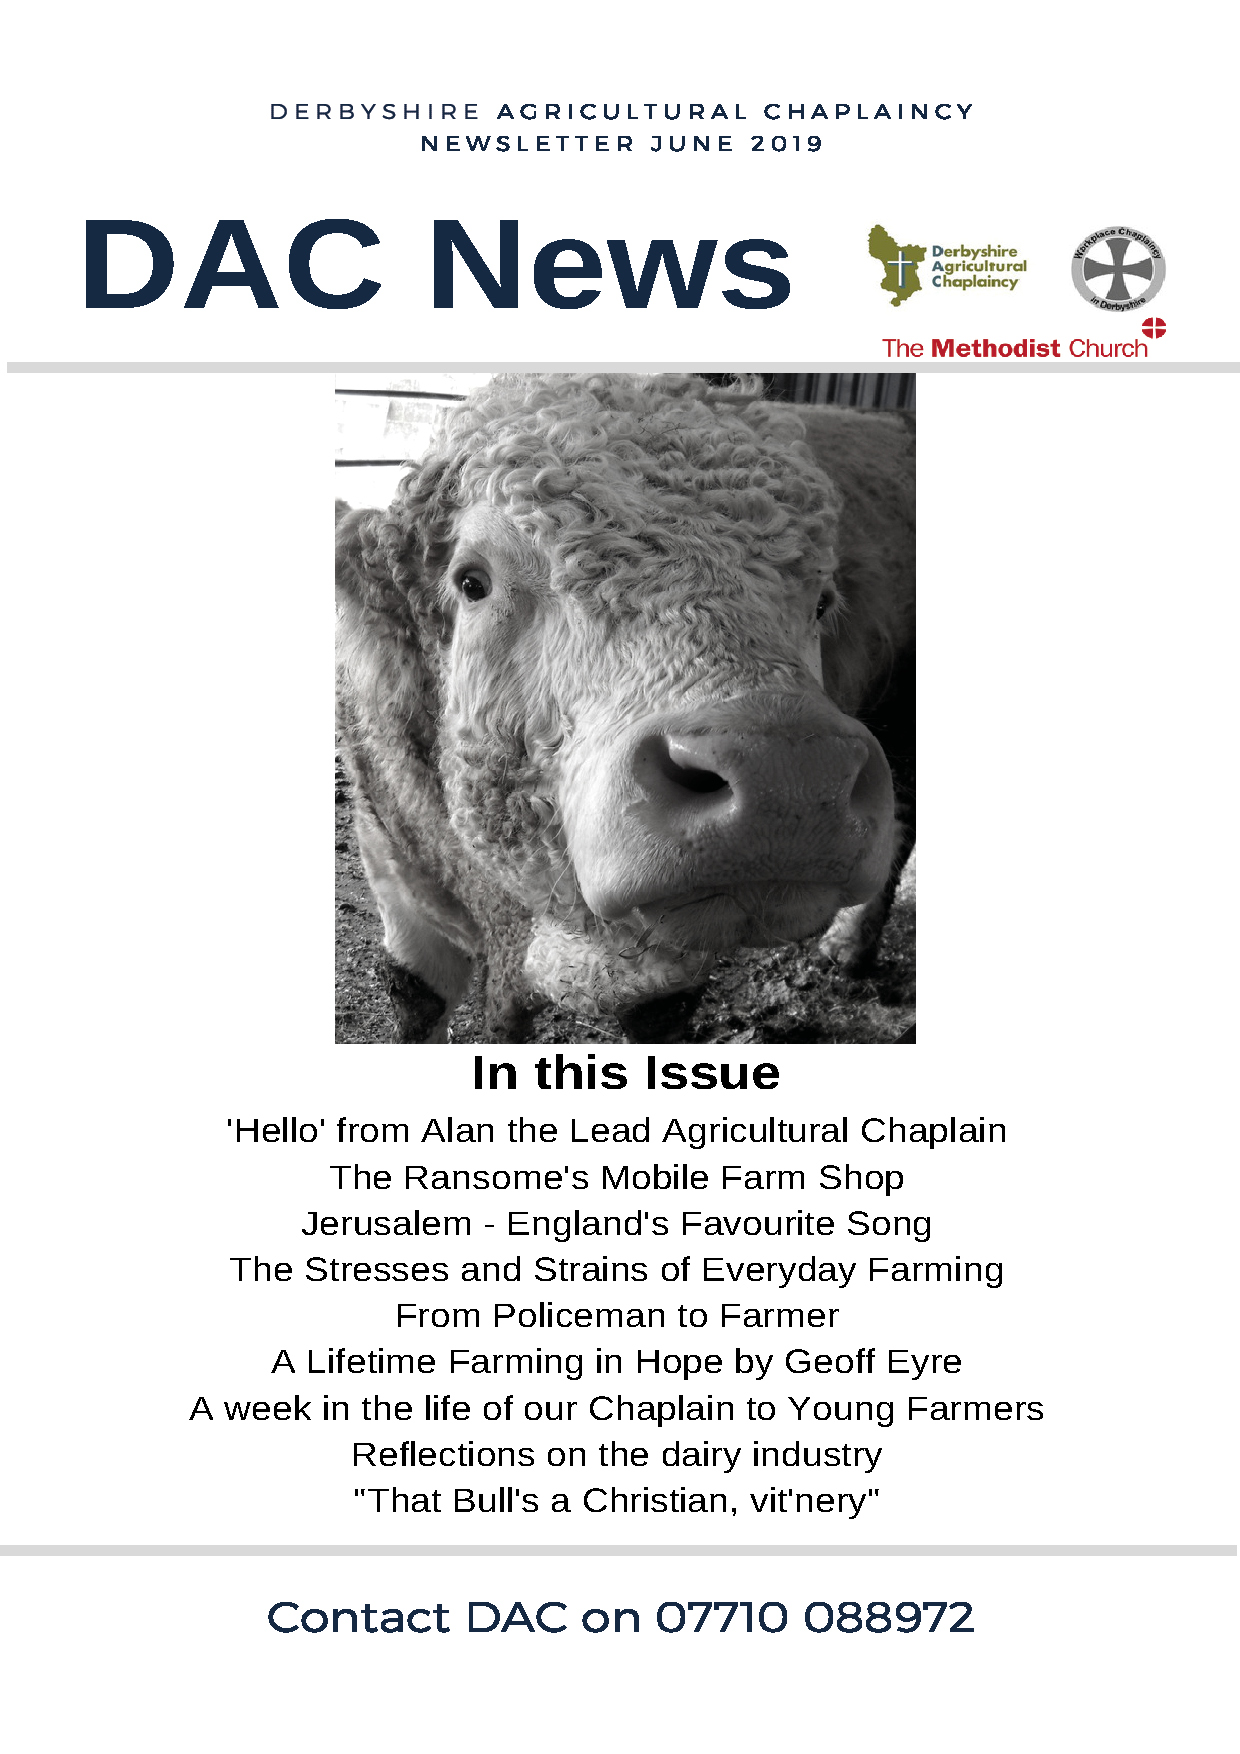 DAChaplaincy June 2019 Newsletter